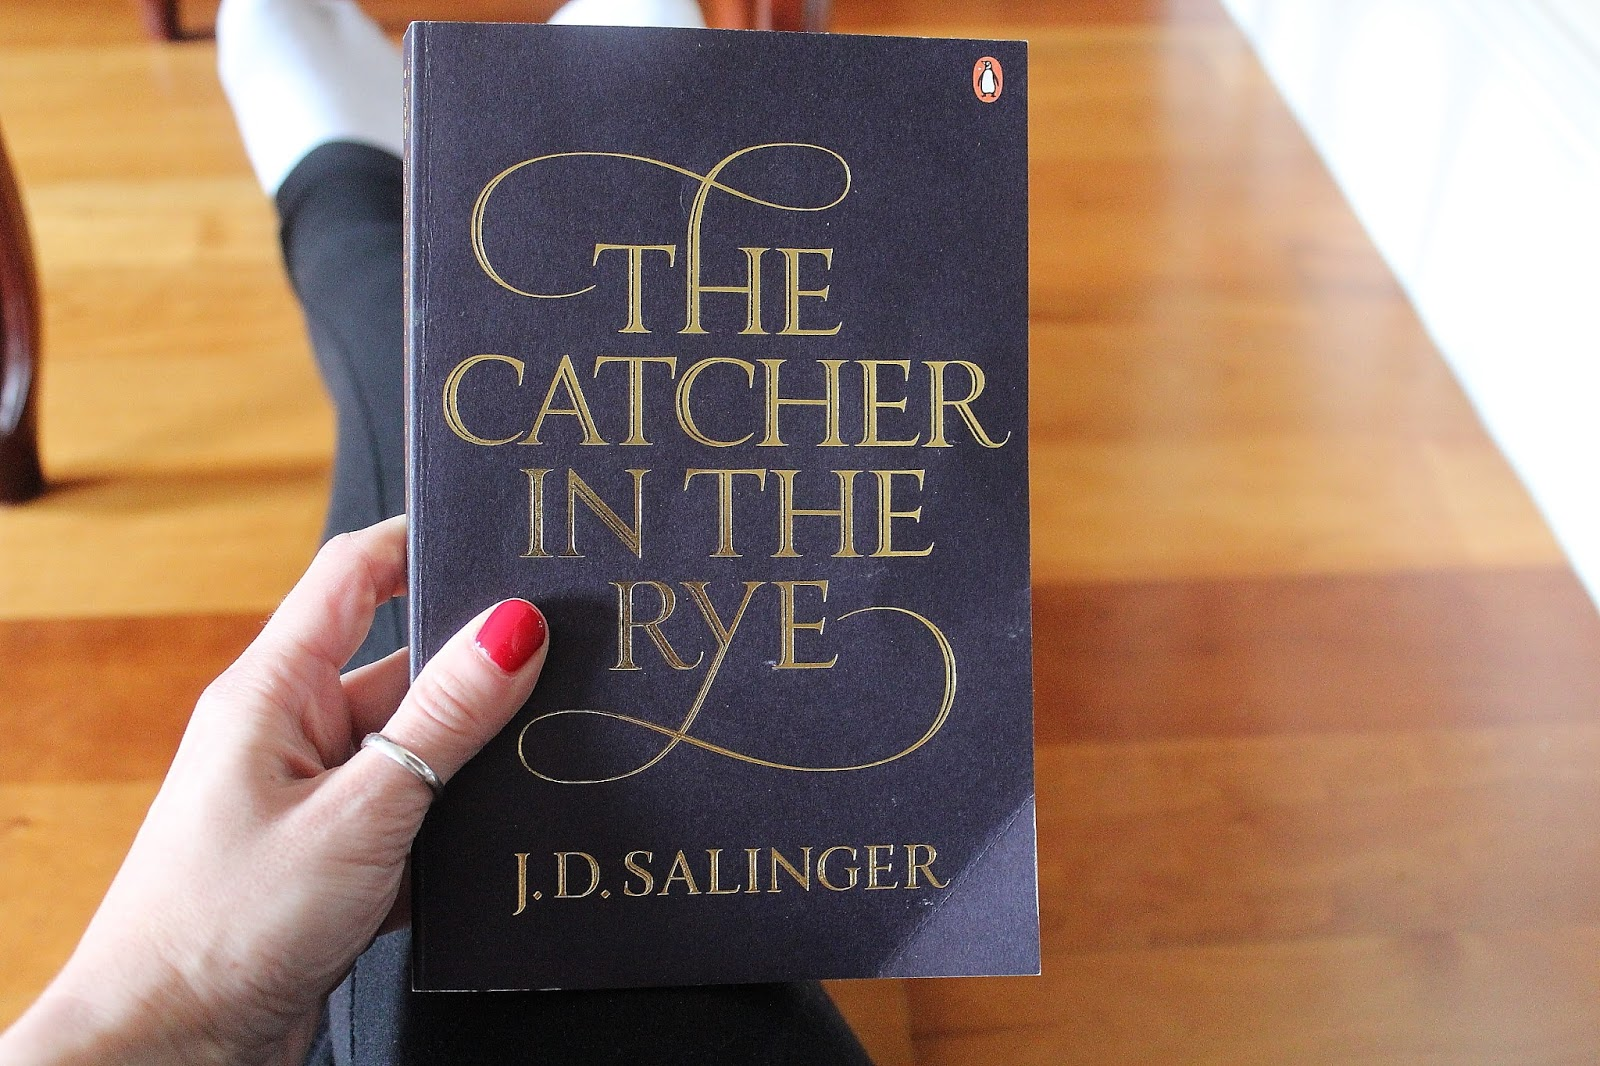 catcher in the rye critique Beyond the controversy that has surrounded the catcher in the rye since it first appeared, and beyond contemporary assessments of the novel's political/cultural relevance, j d salinger's.